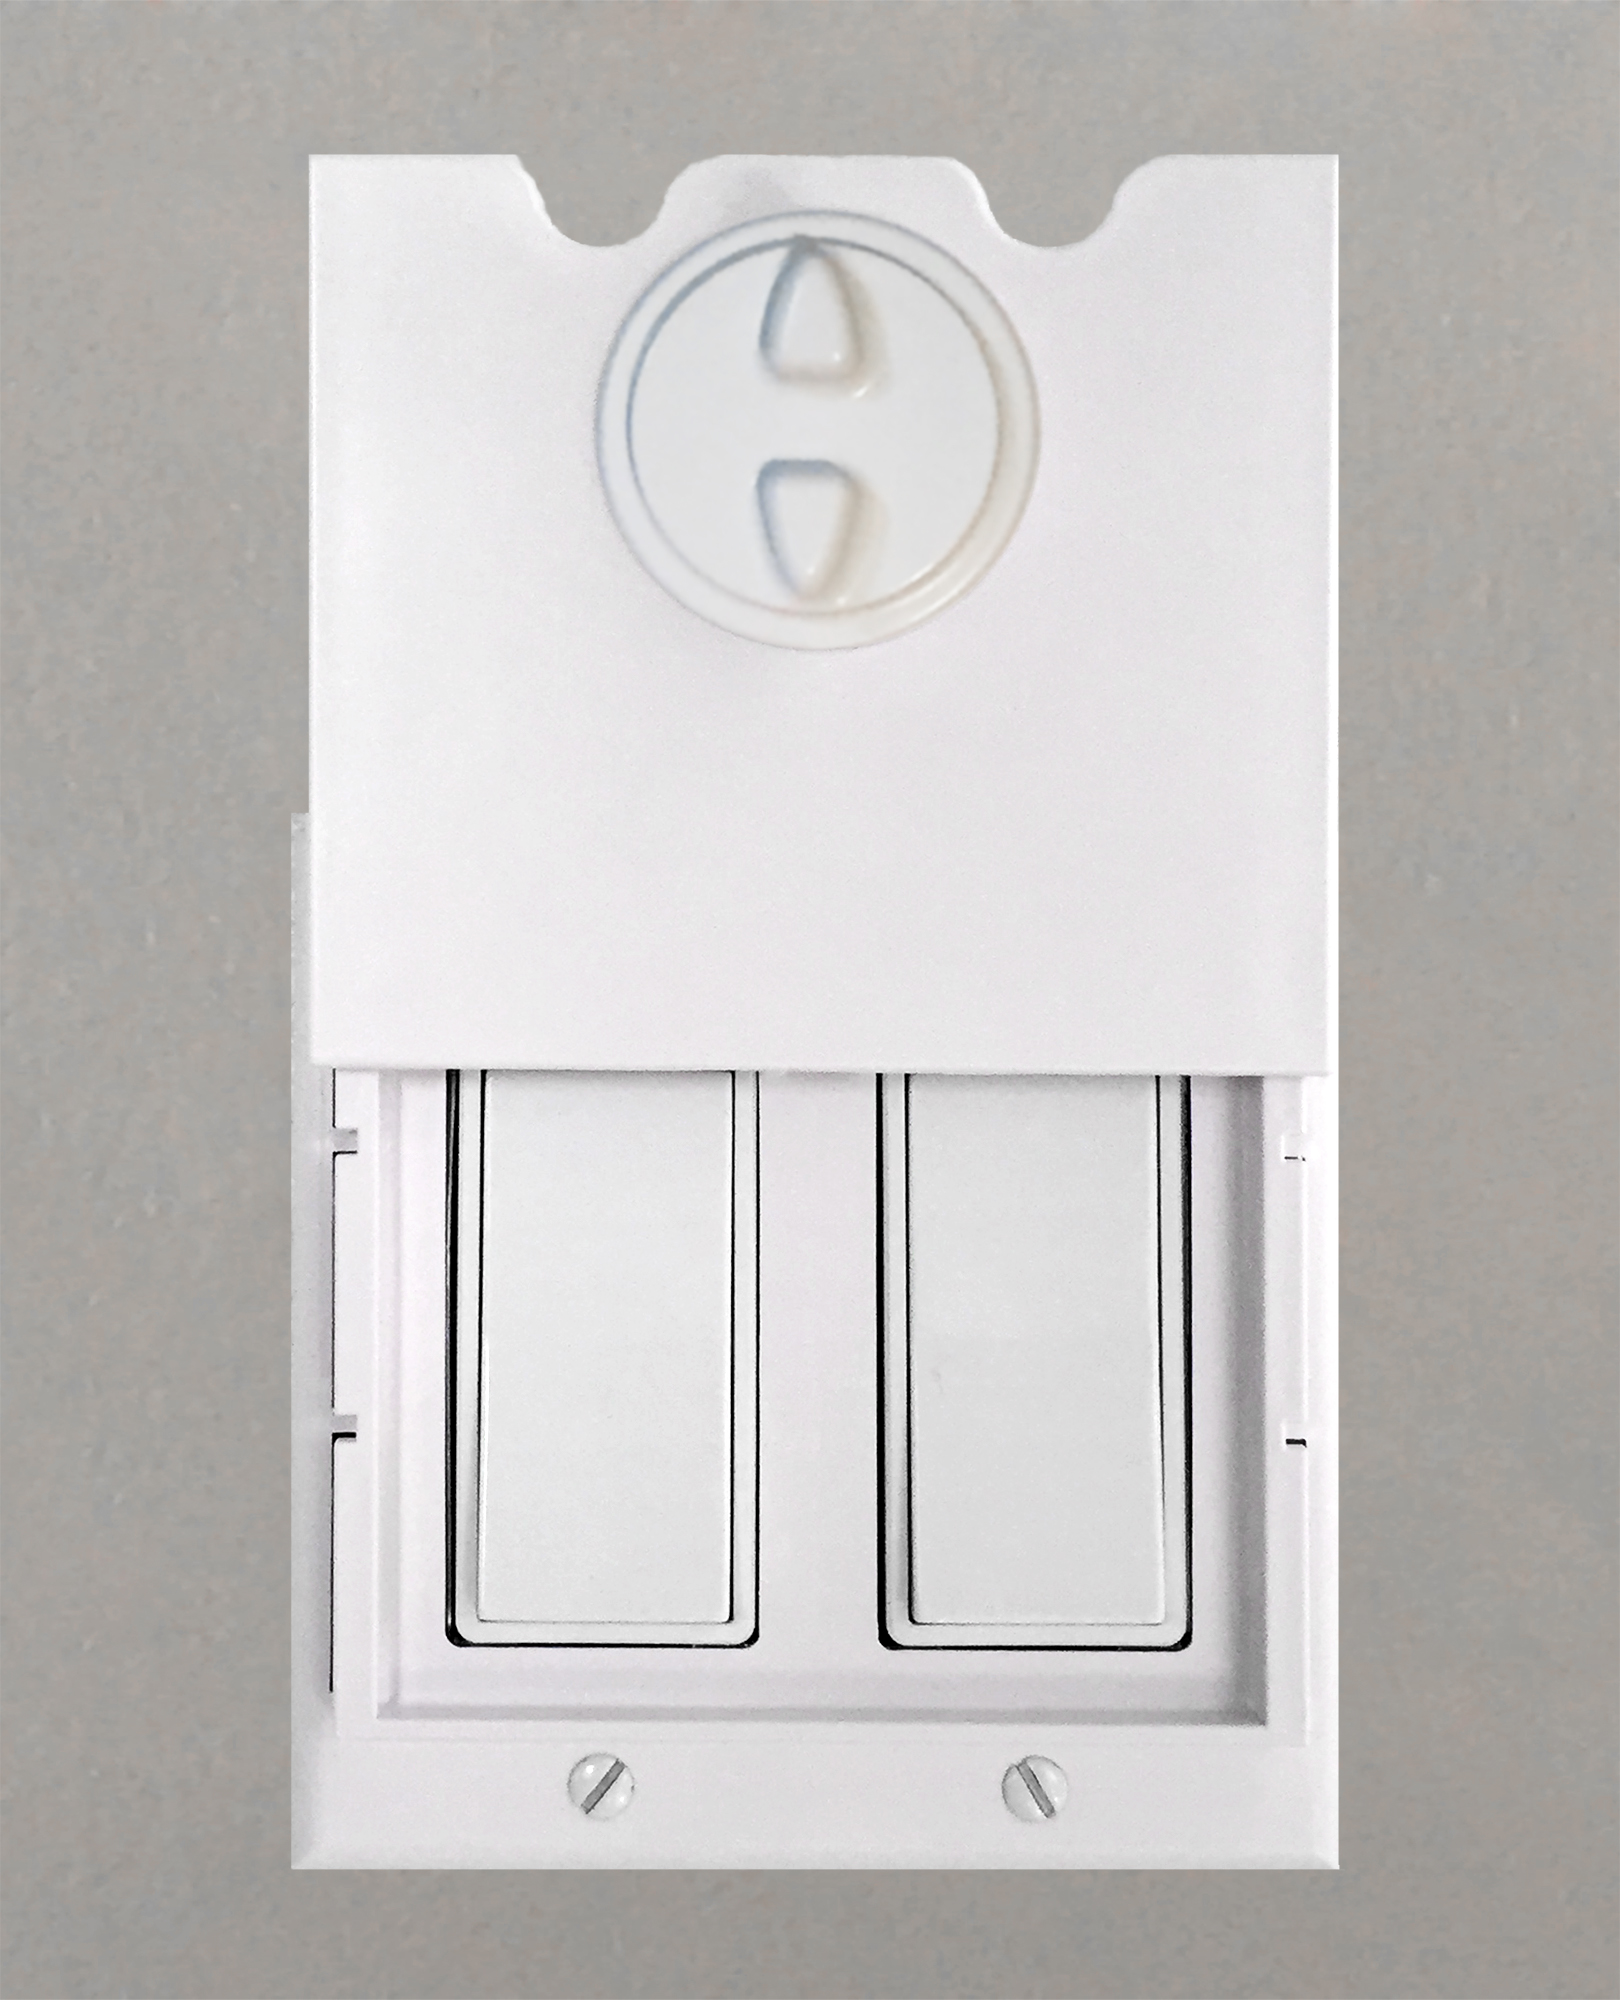 Value Pack: 6 HomeStar Safety Light Switch Guards - White